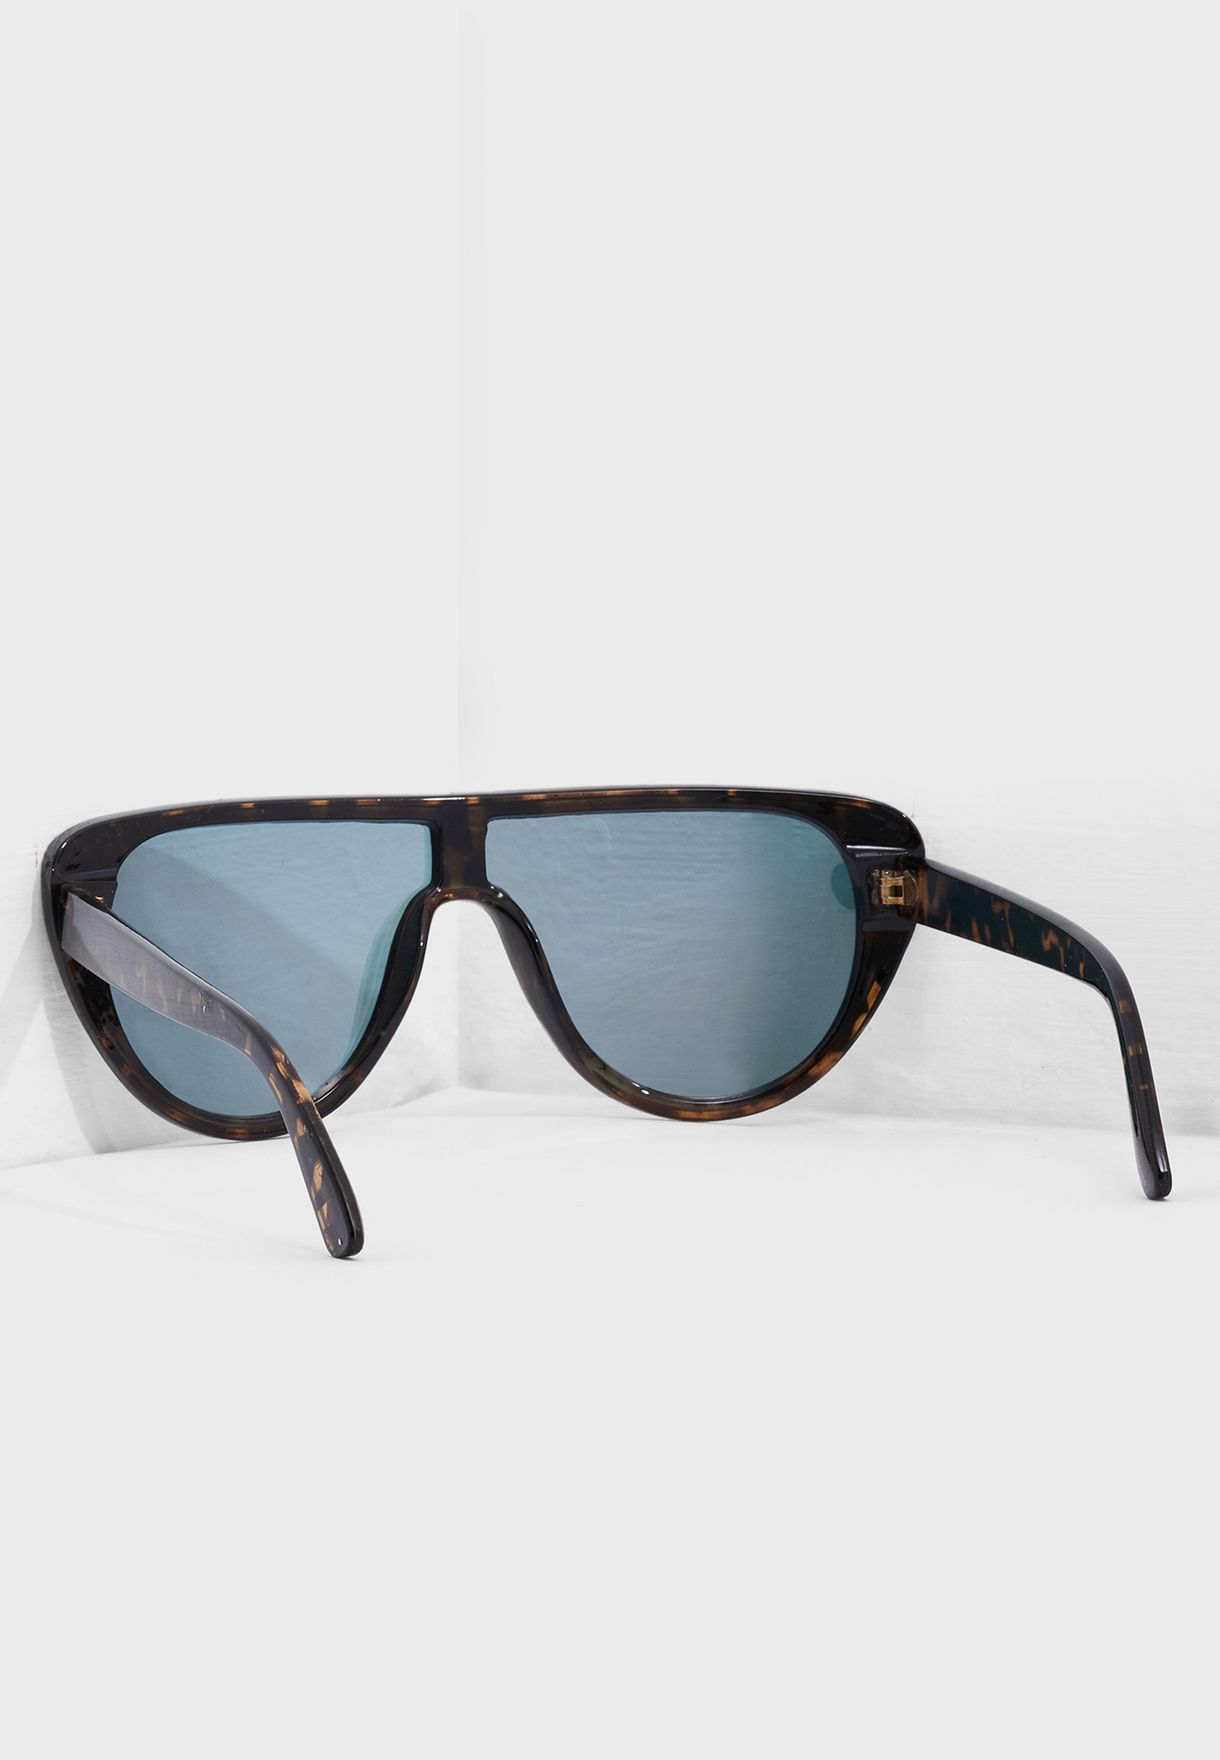 Gilpinia Sunglass